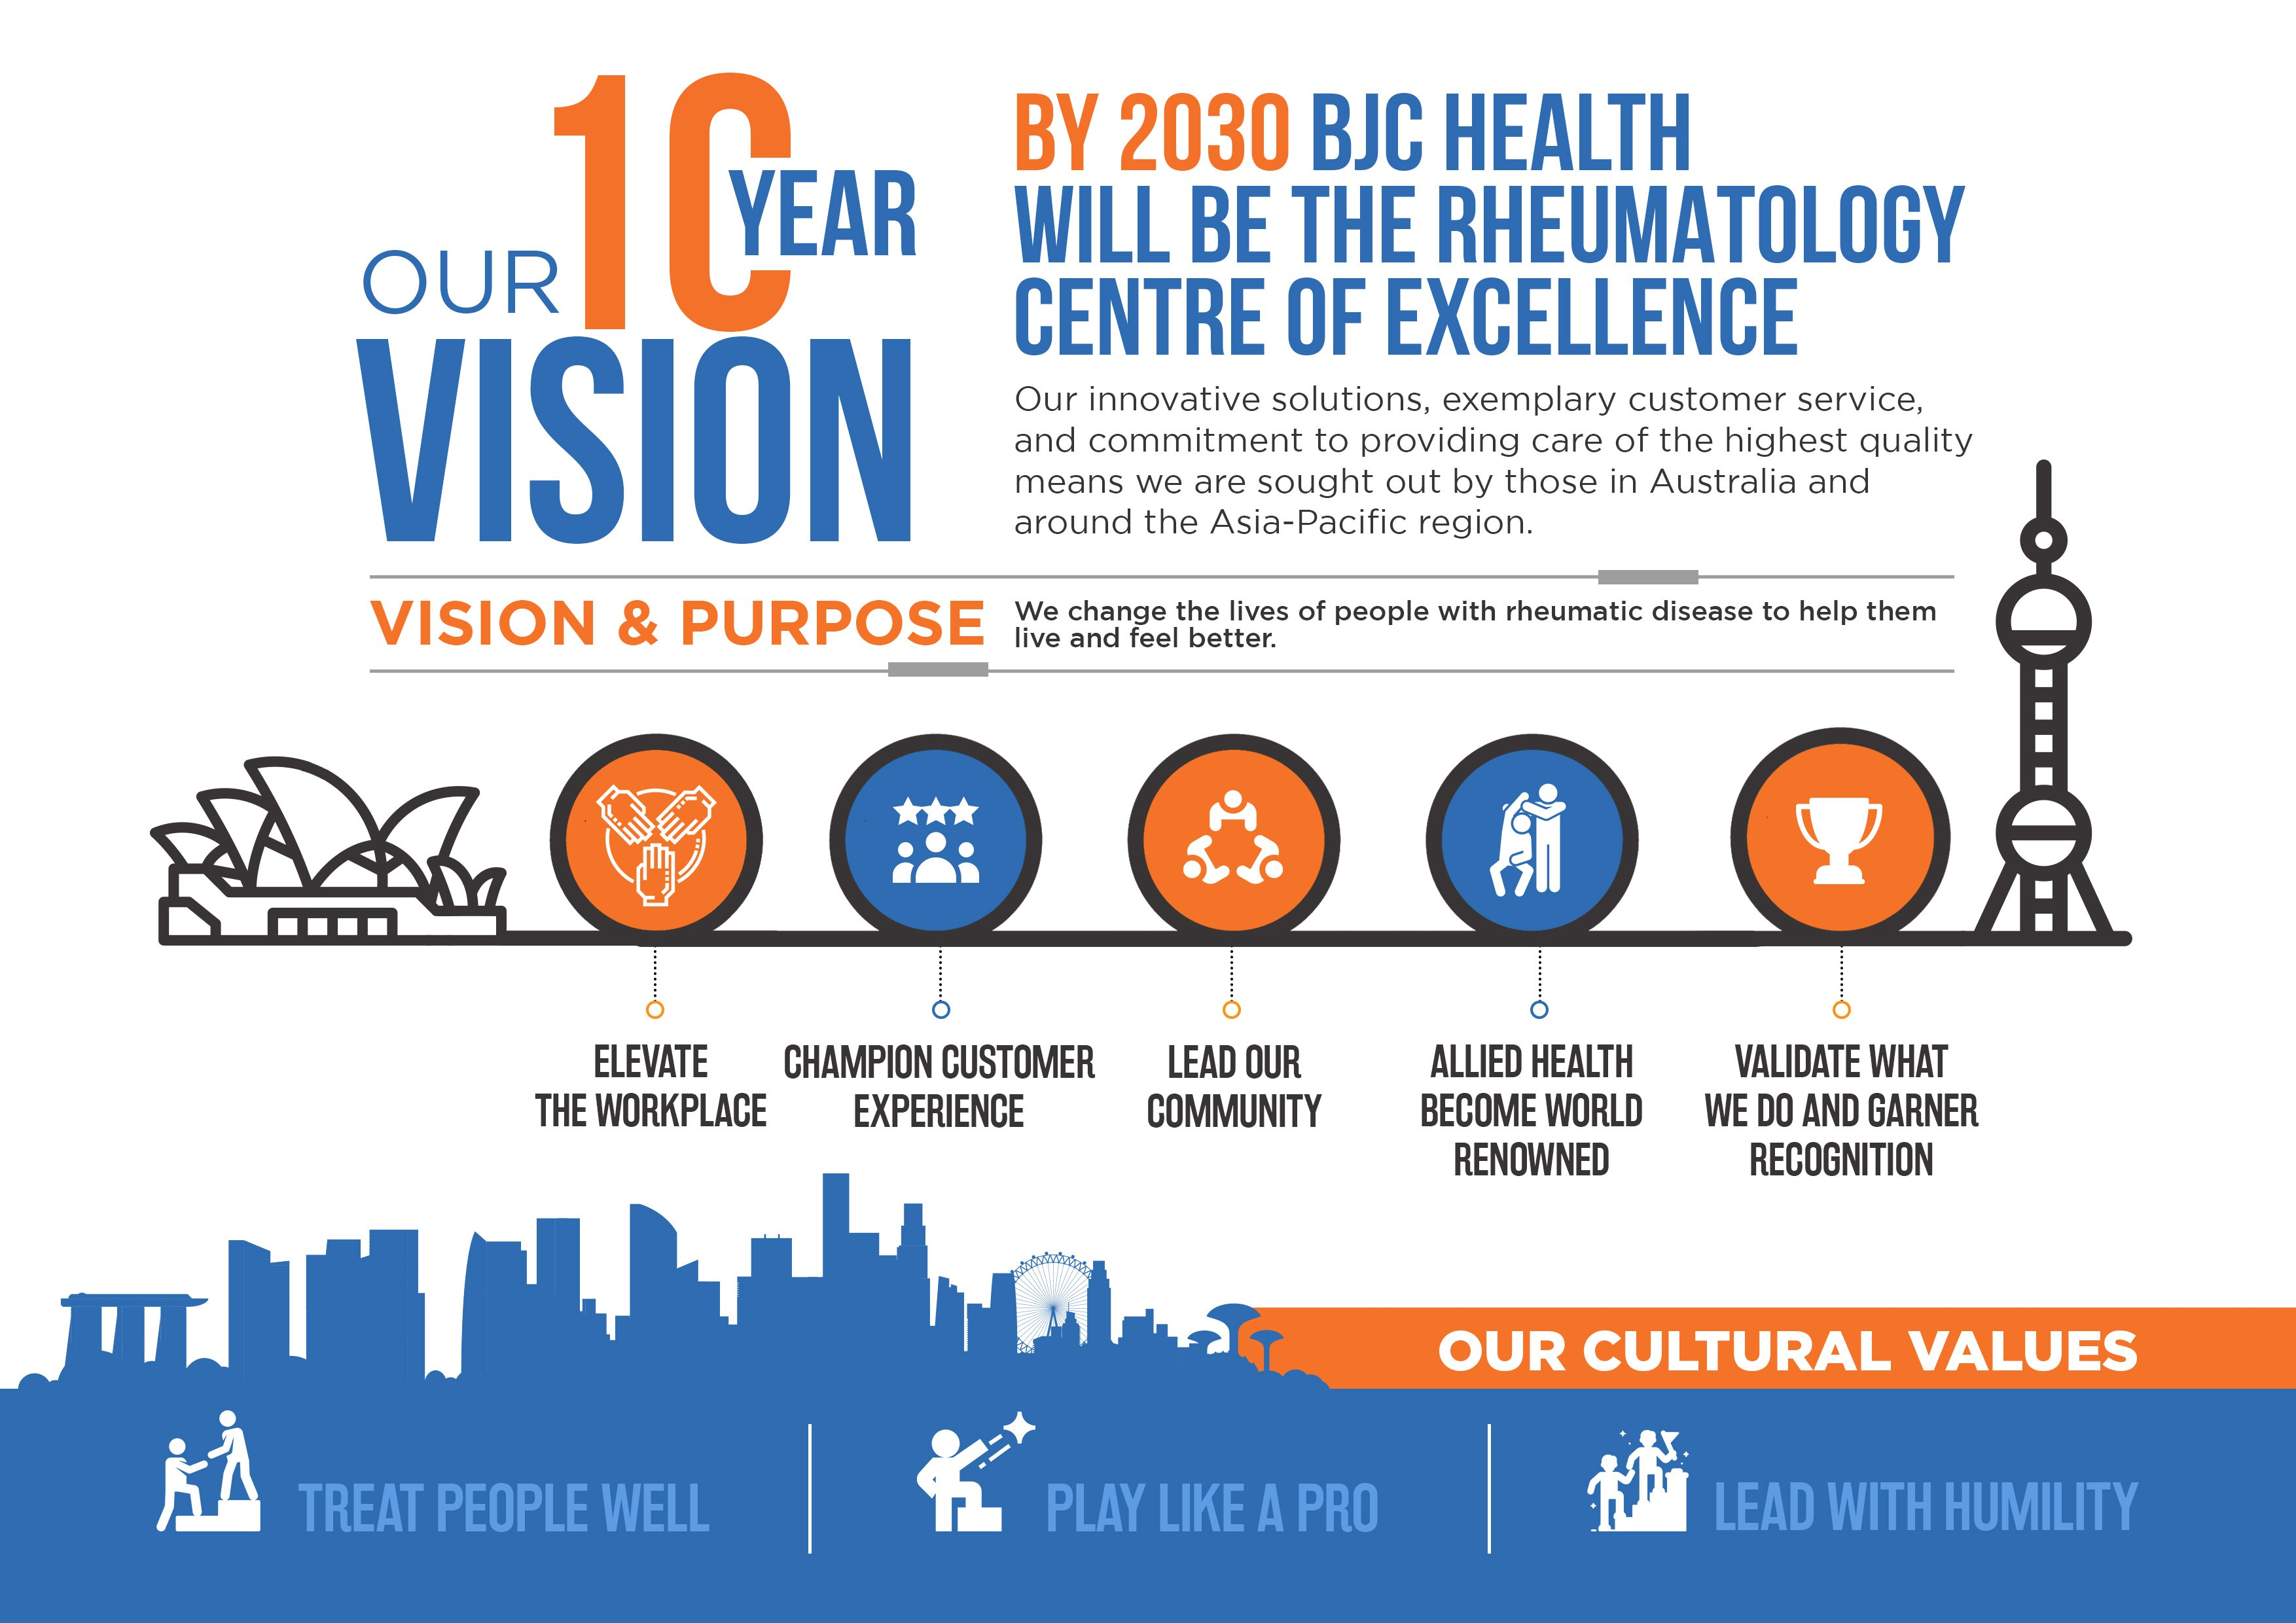 10 year vision to inspire our team